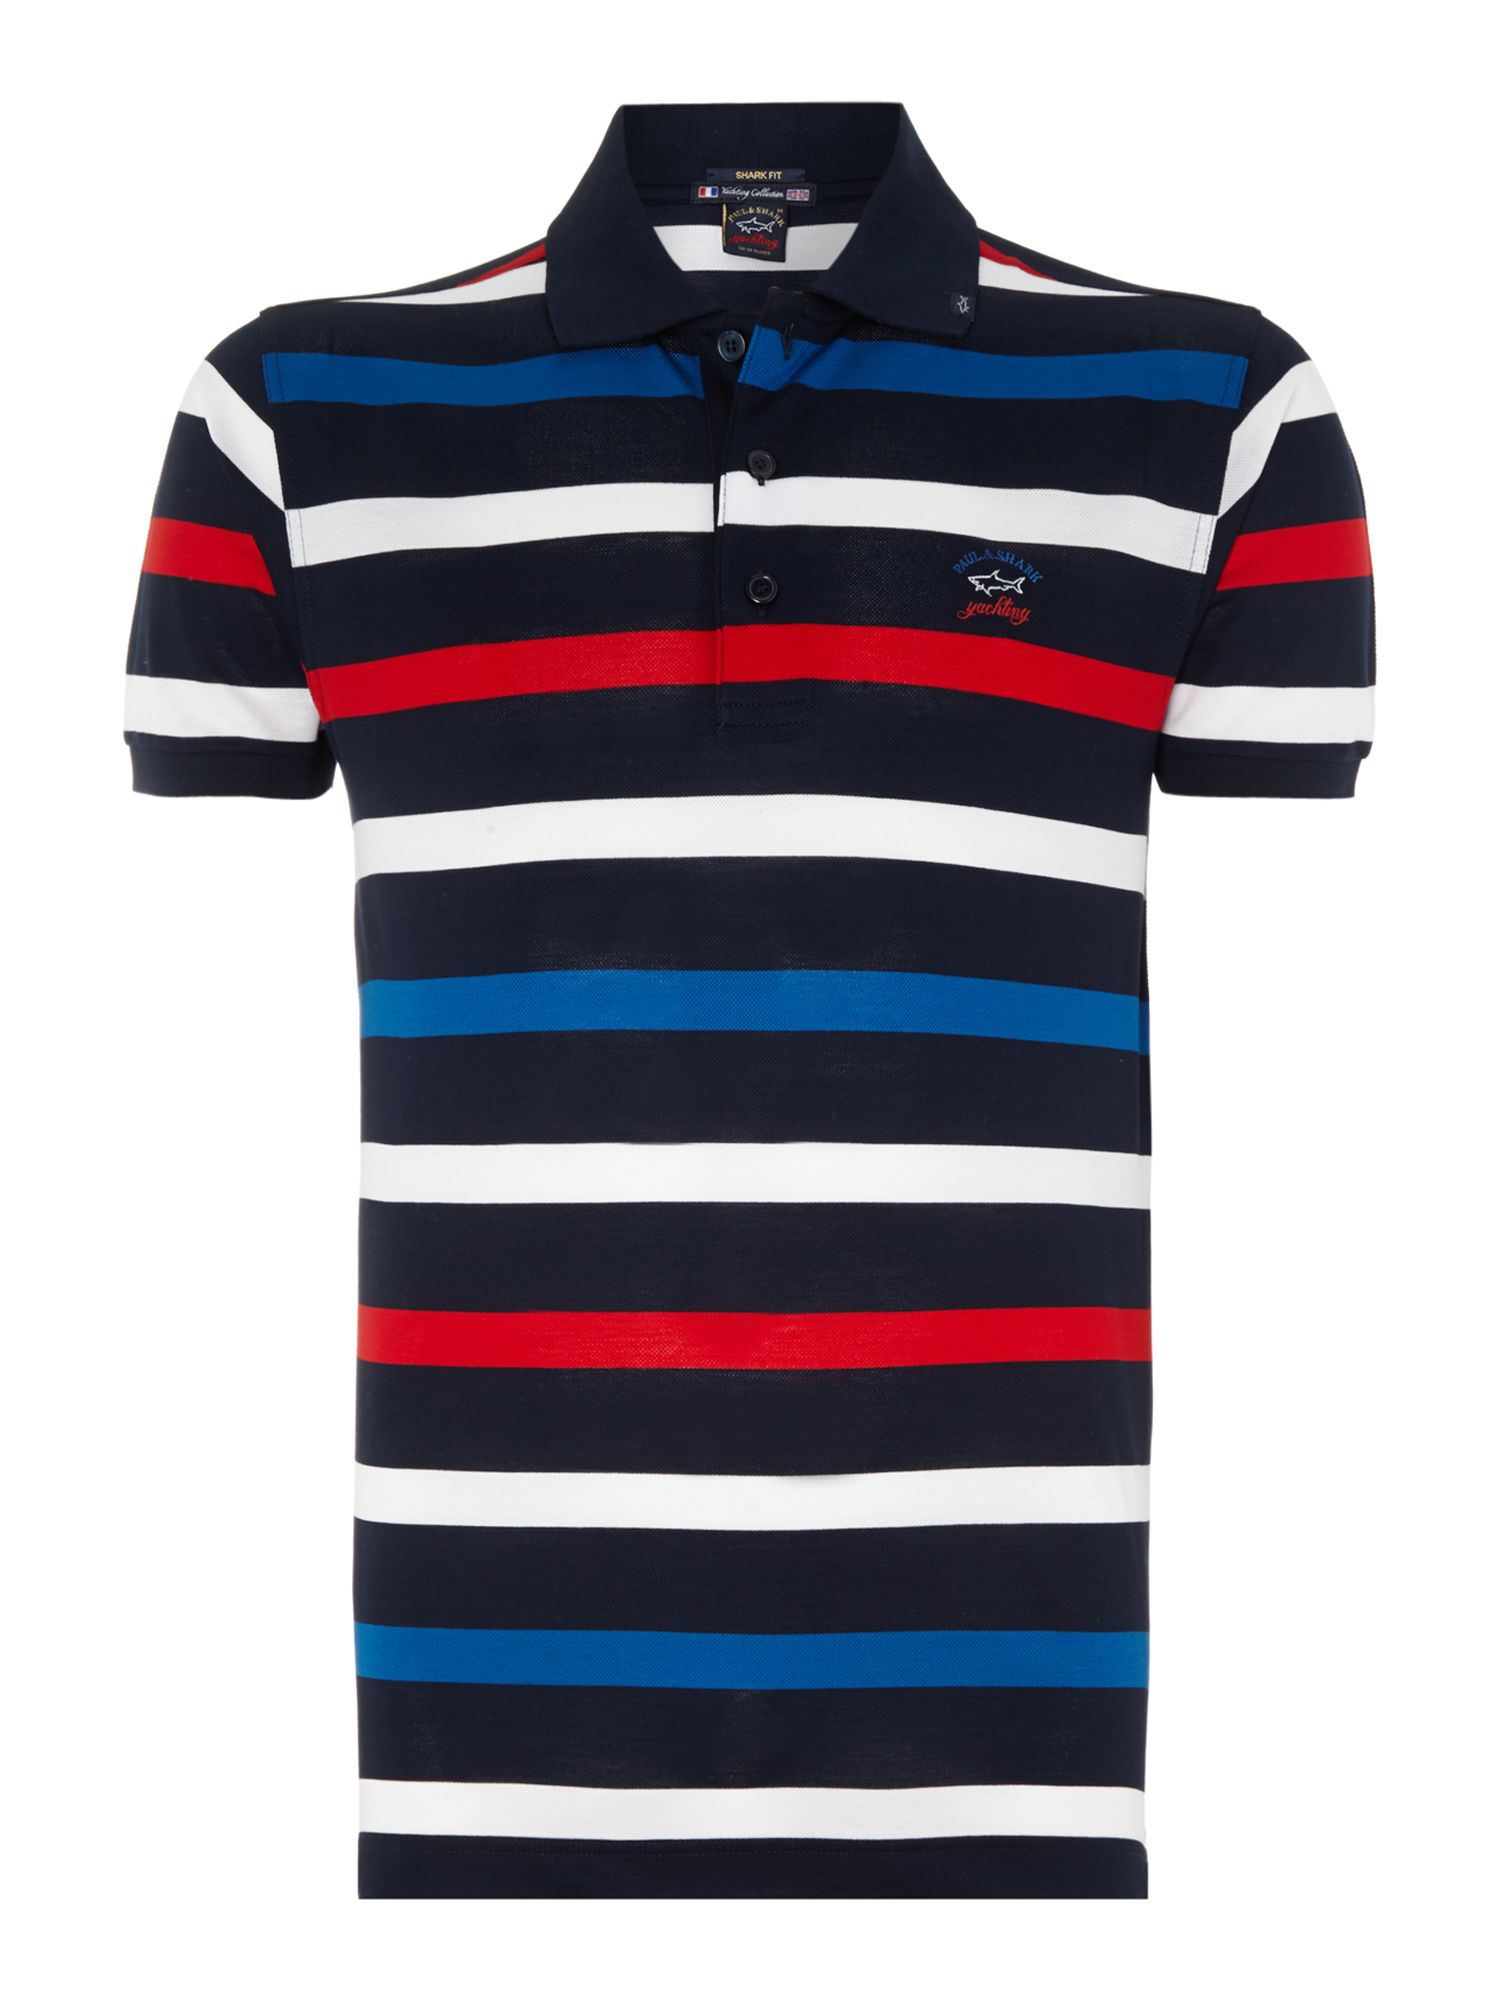 Mutli stripe polo